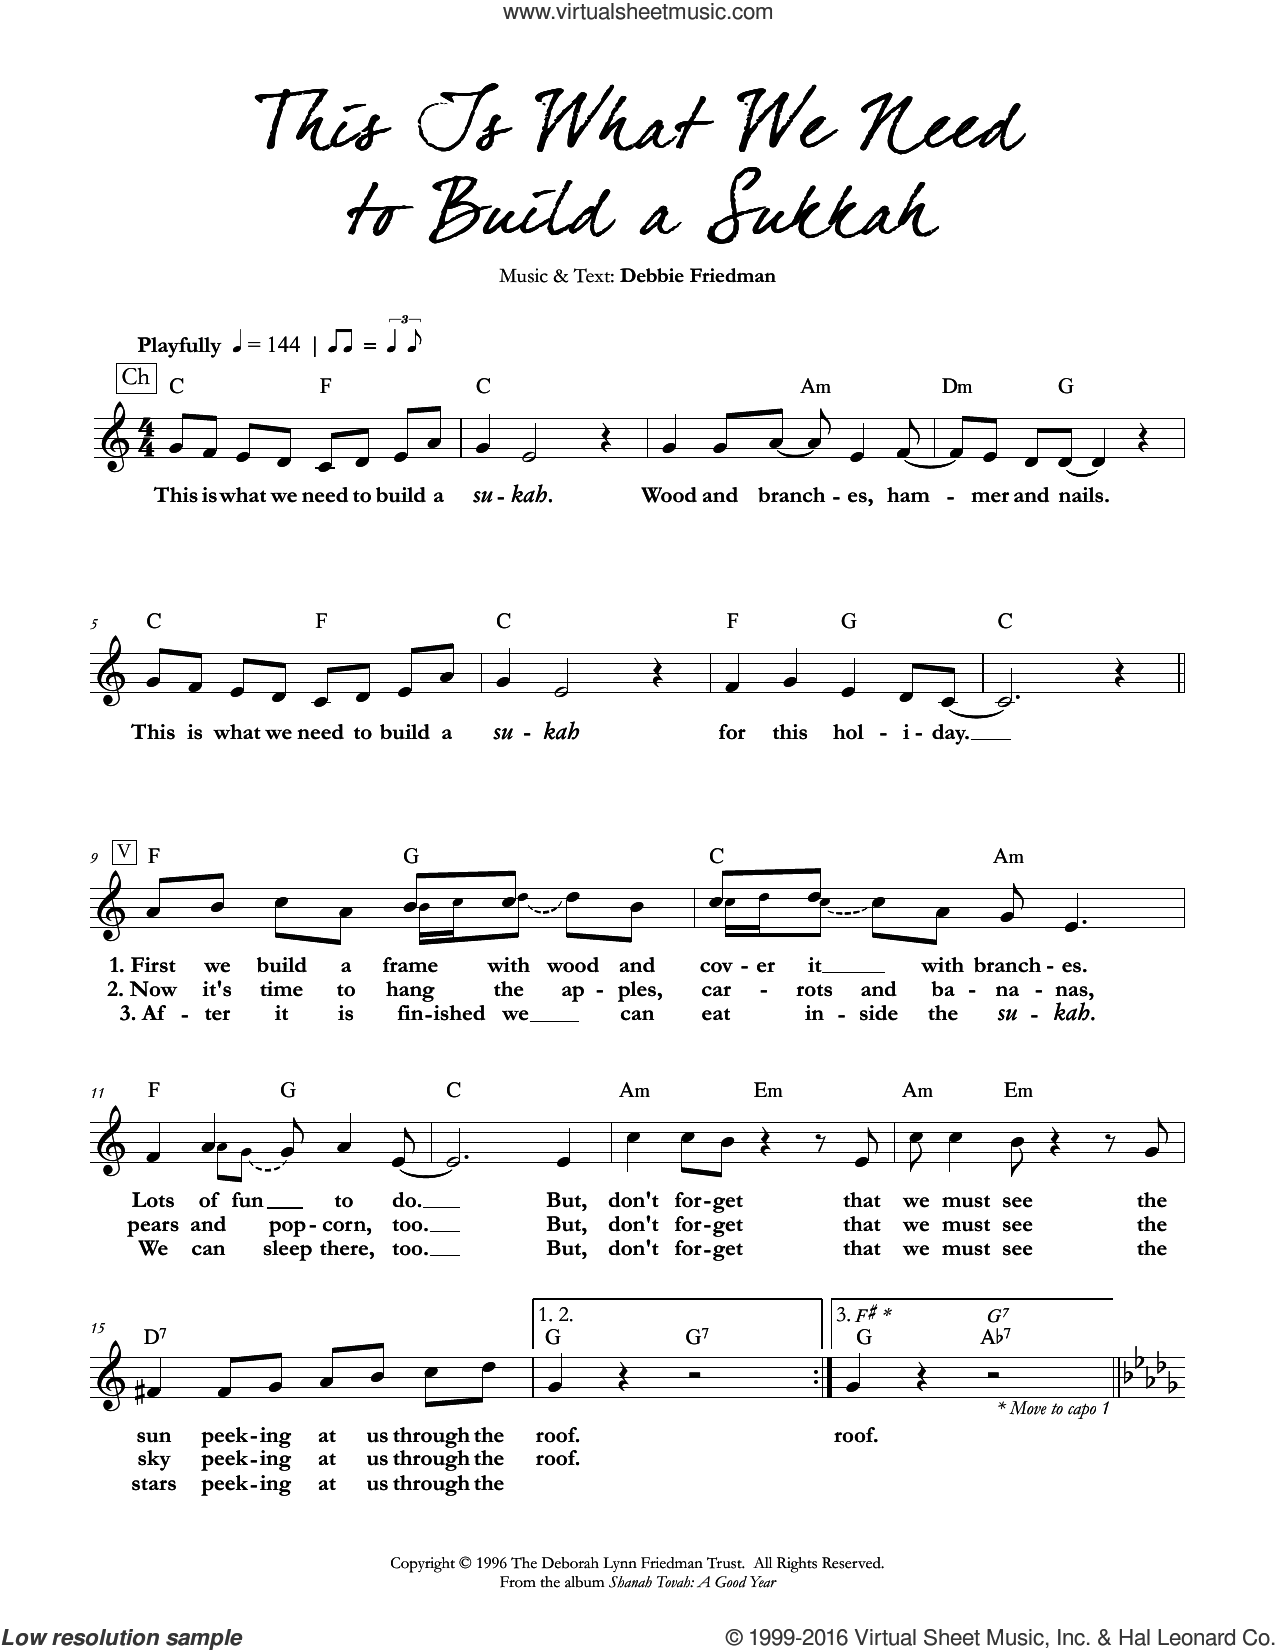 This Is What We Need to Build a Sukkah sheet music for voice and other instruments (fake book) by Debbie Friedman, intermediate skill level